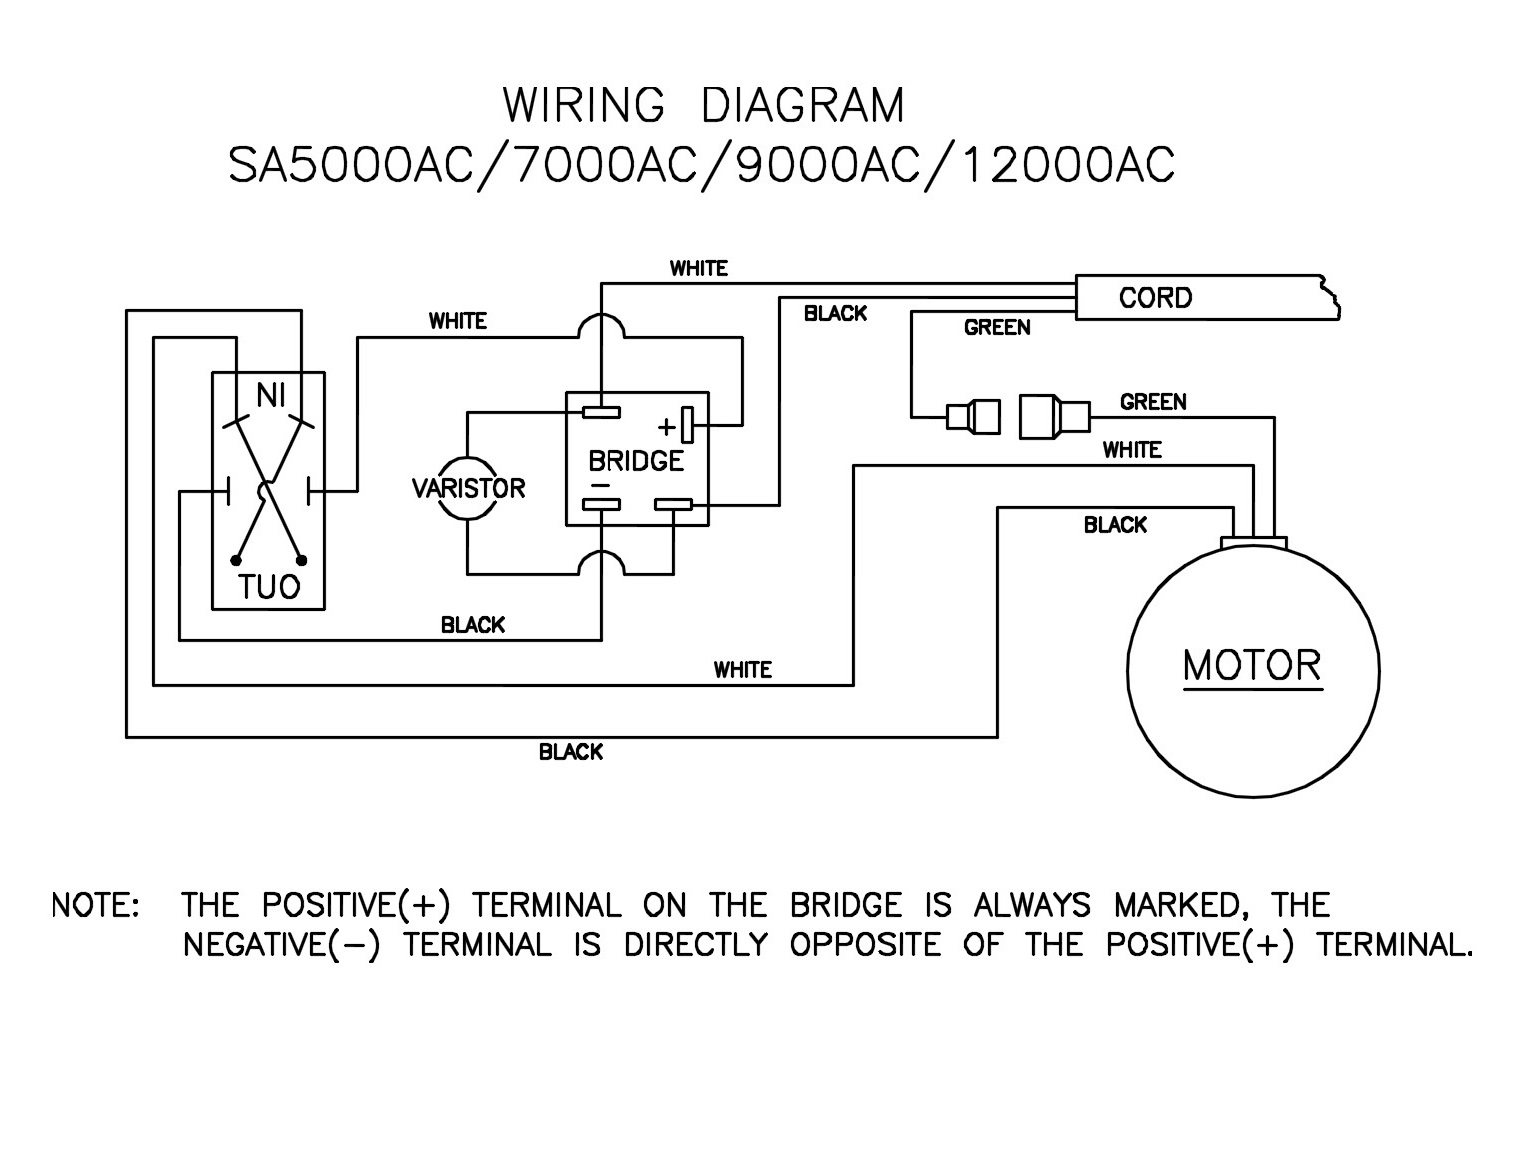 120 volt plug wiring diagram murray lawn tractor parts ac winches with standard switch manual dutton